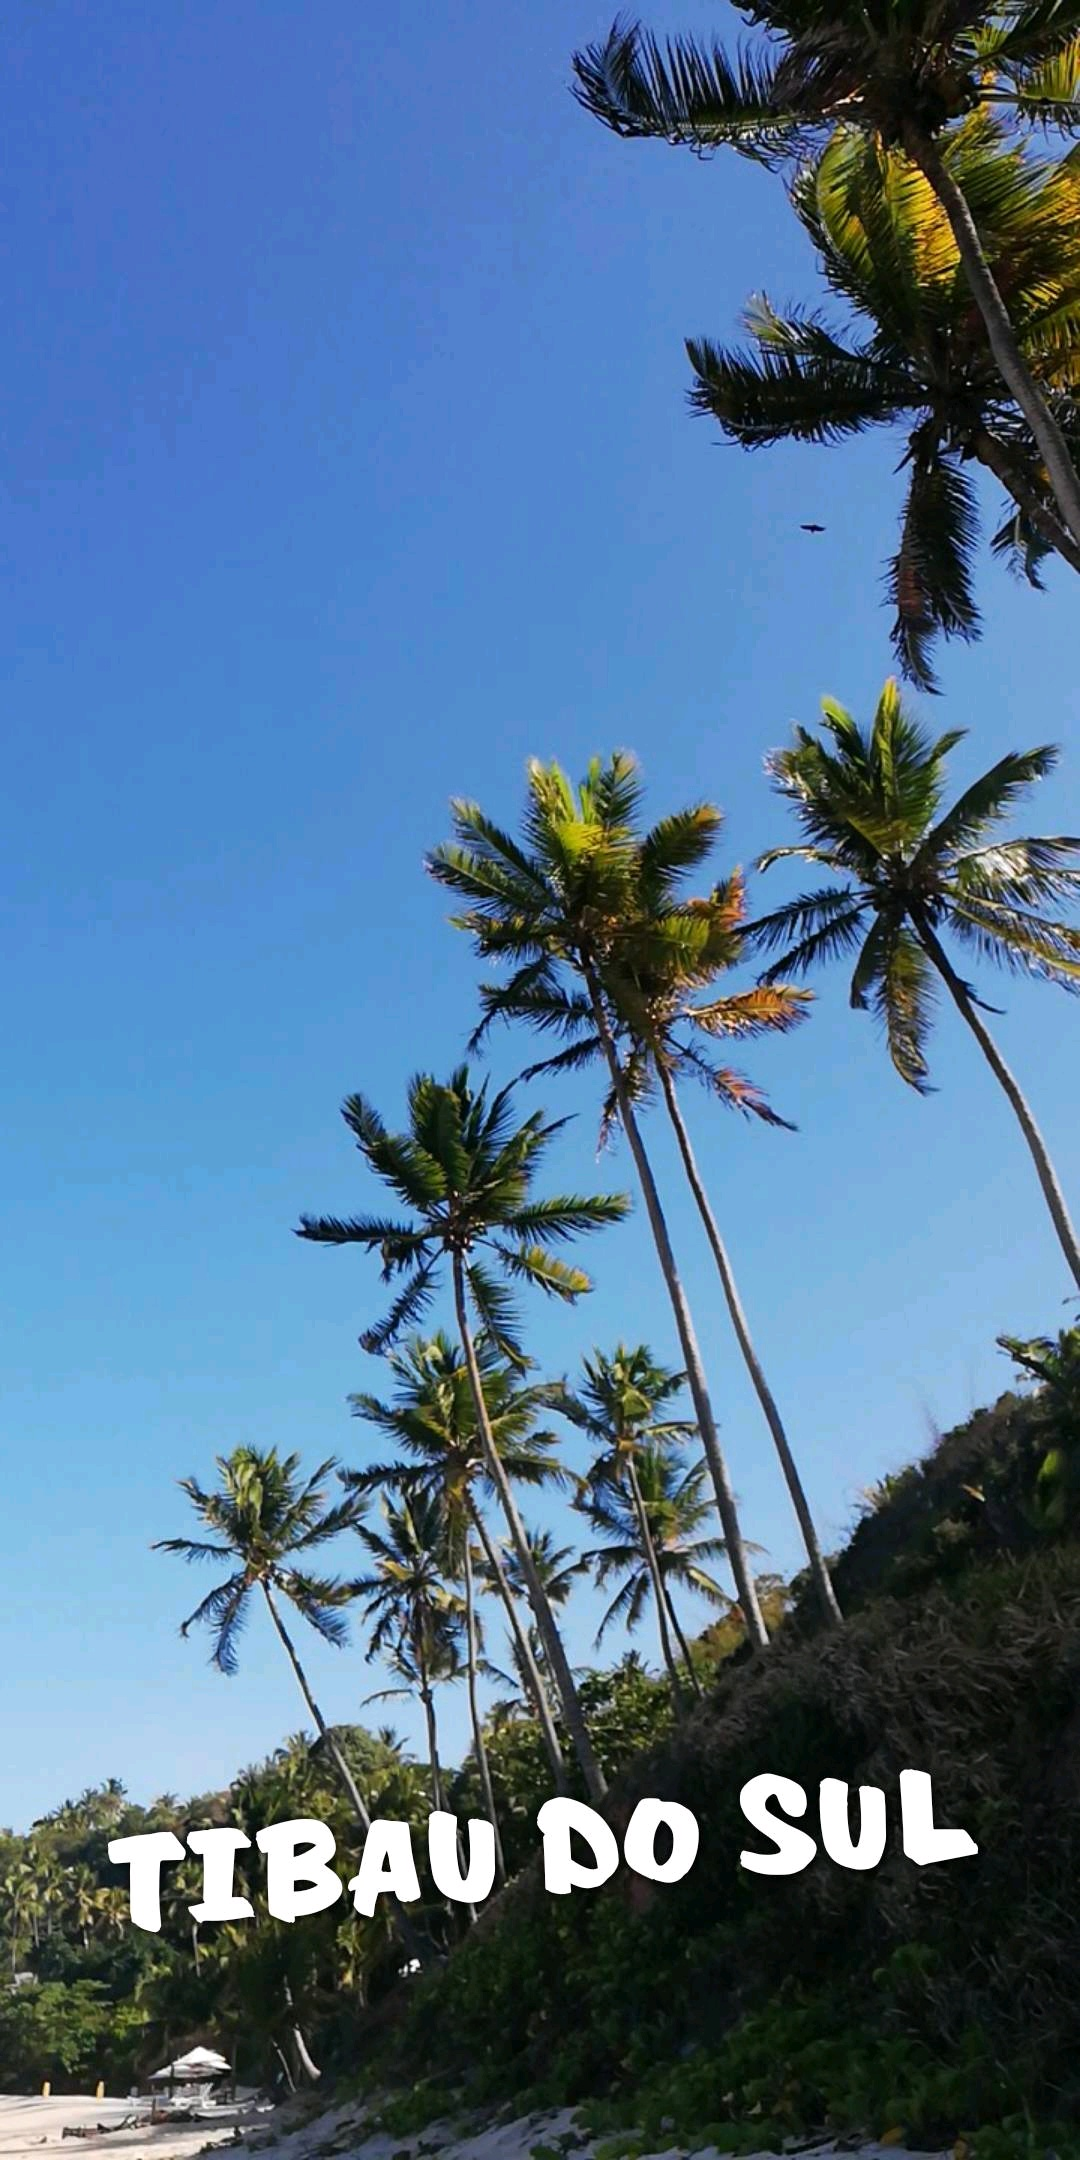 Lover of water sports ? You must go to Tibau do Sul – Brazil